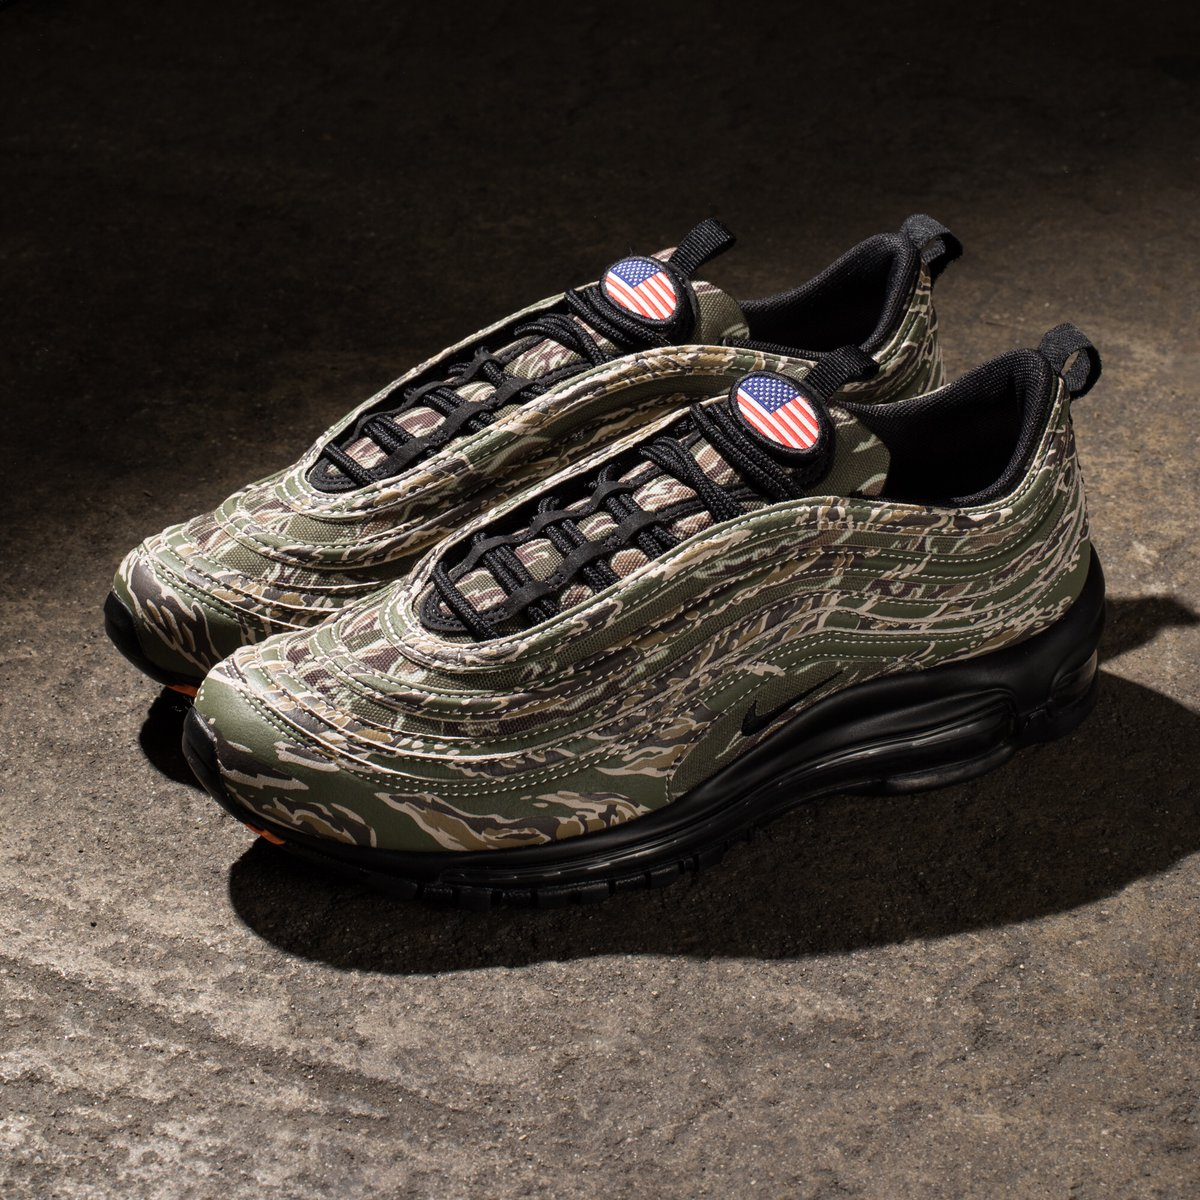 SOLELINKS Europe on Twitter: Undefeated X Nike Air Max 97